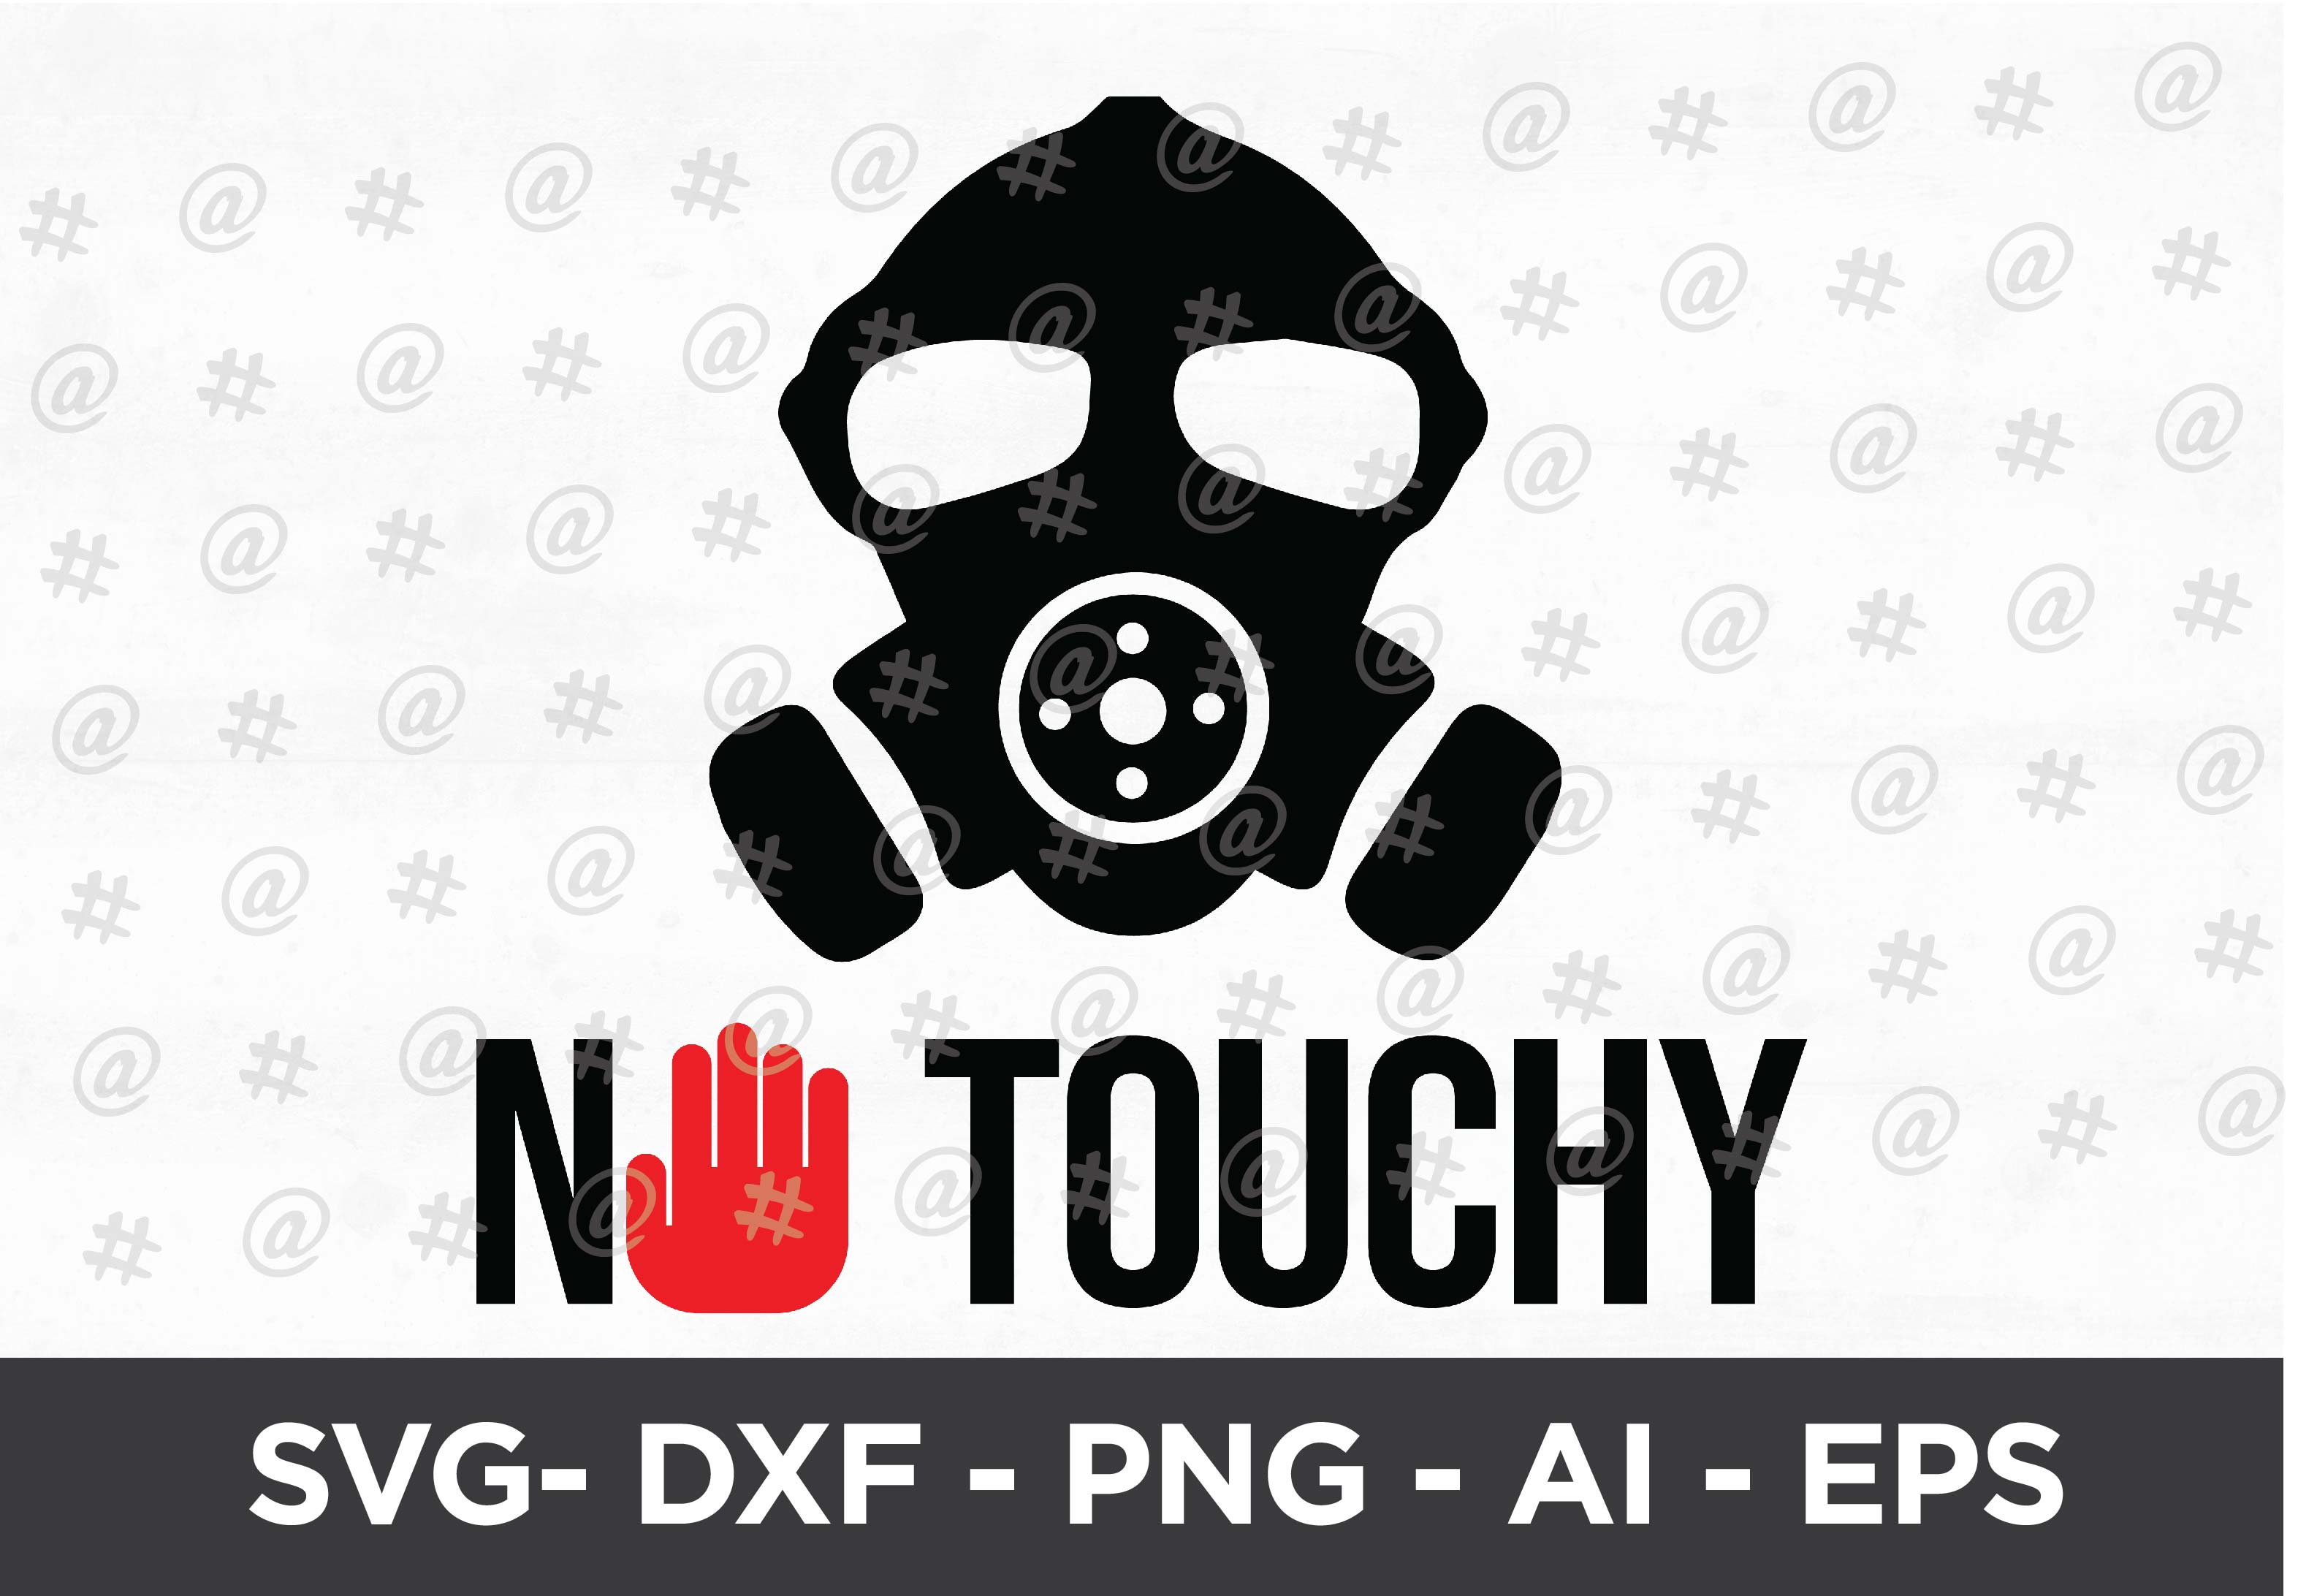 Download Free No Touchy Design Graphic By Spoonyprint Creative Fabrica for Cricut Explore, Silhouette and other cutting machines.